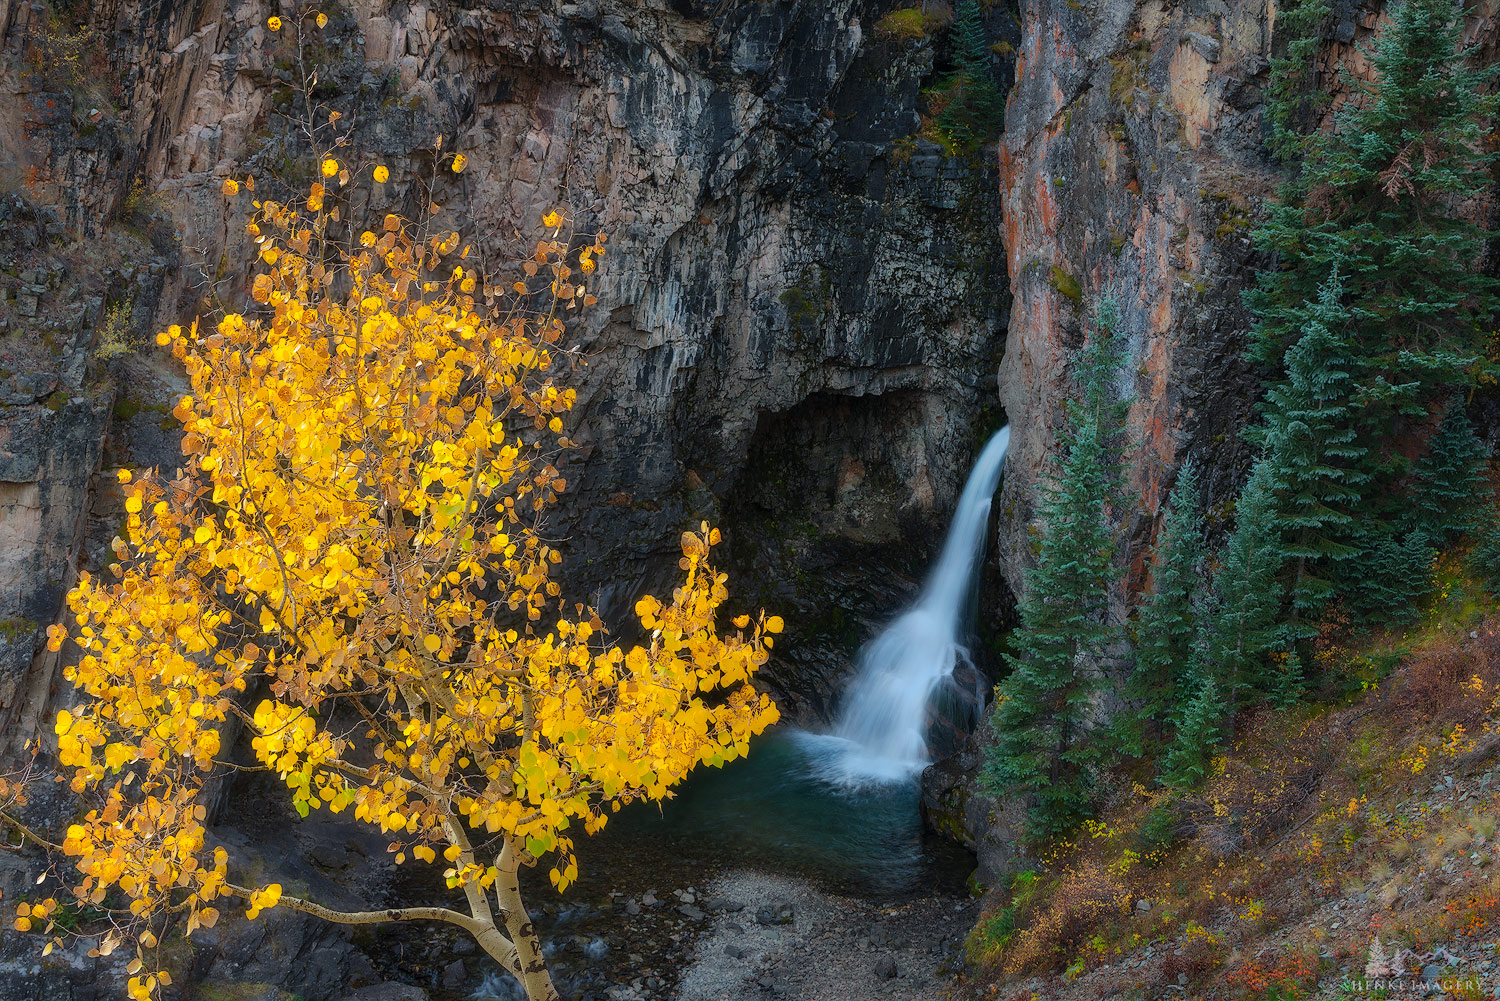 Anamazing waterfall nestled along the Engineer Pass Road in the San Juan Mtns.